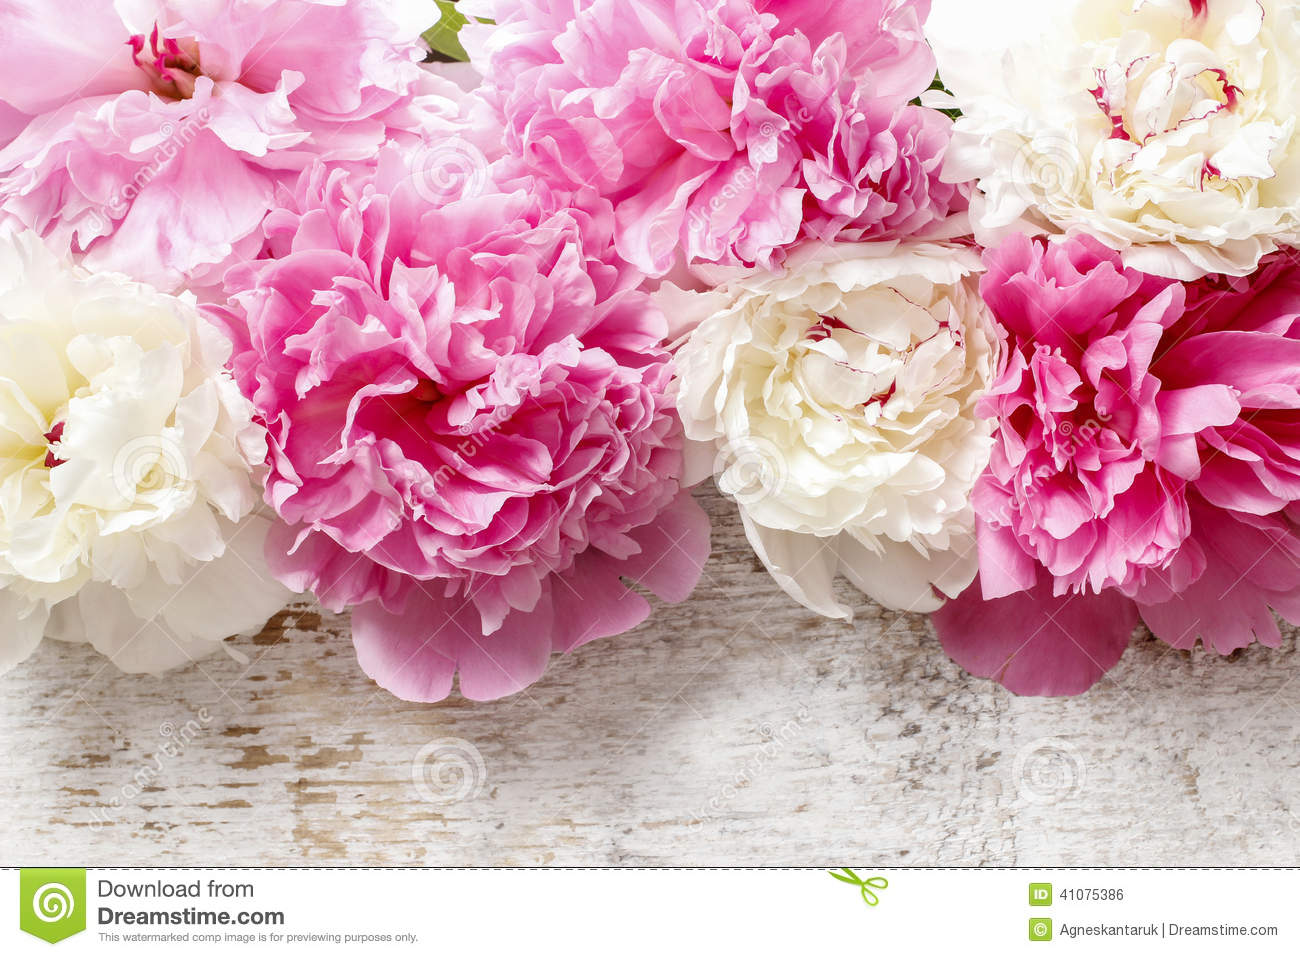 Peony Love Quote Wallpaper Stunning Pink Peonies Yellow Carnations And Roses Stock